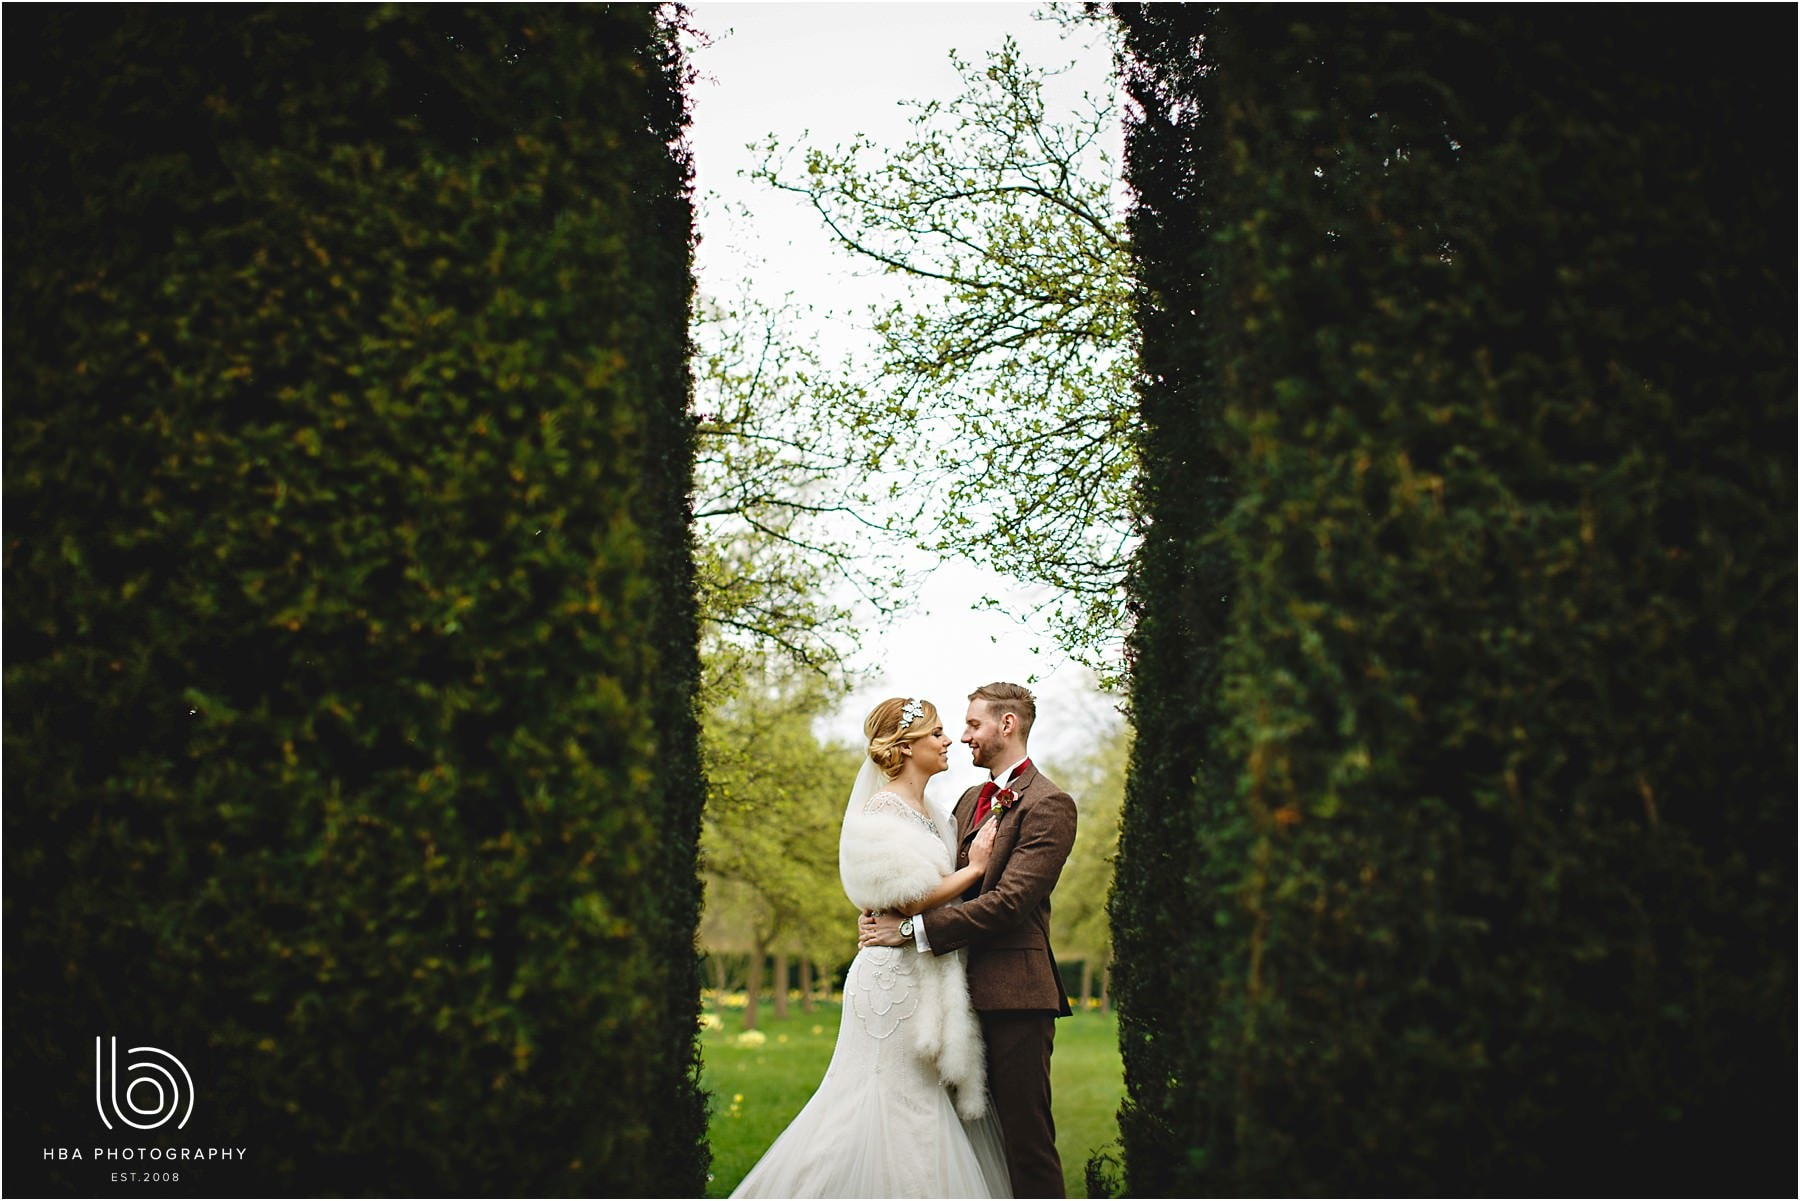 The bride and groom in the talll green hedges at Hardwick Hall